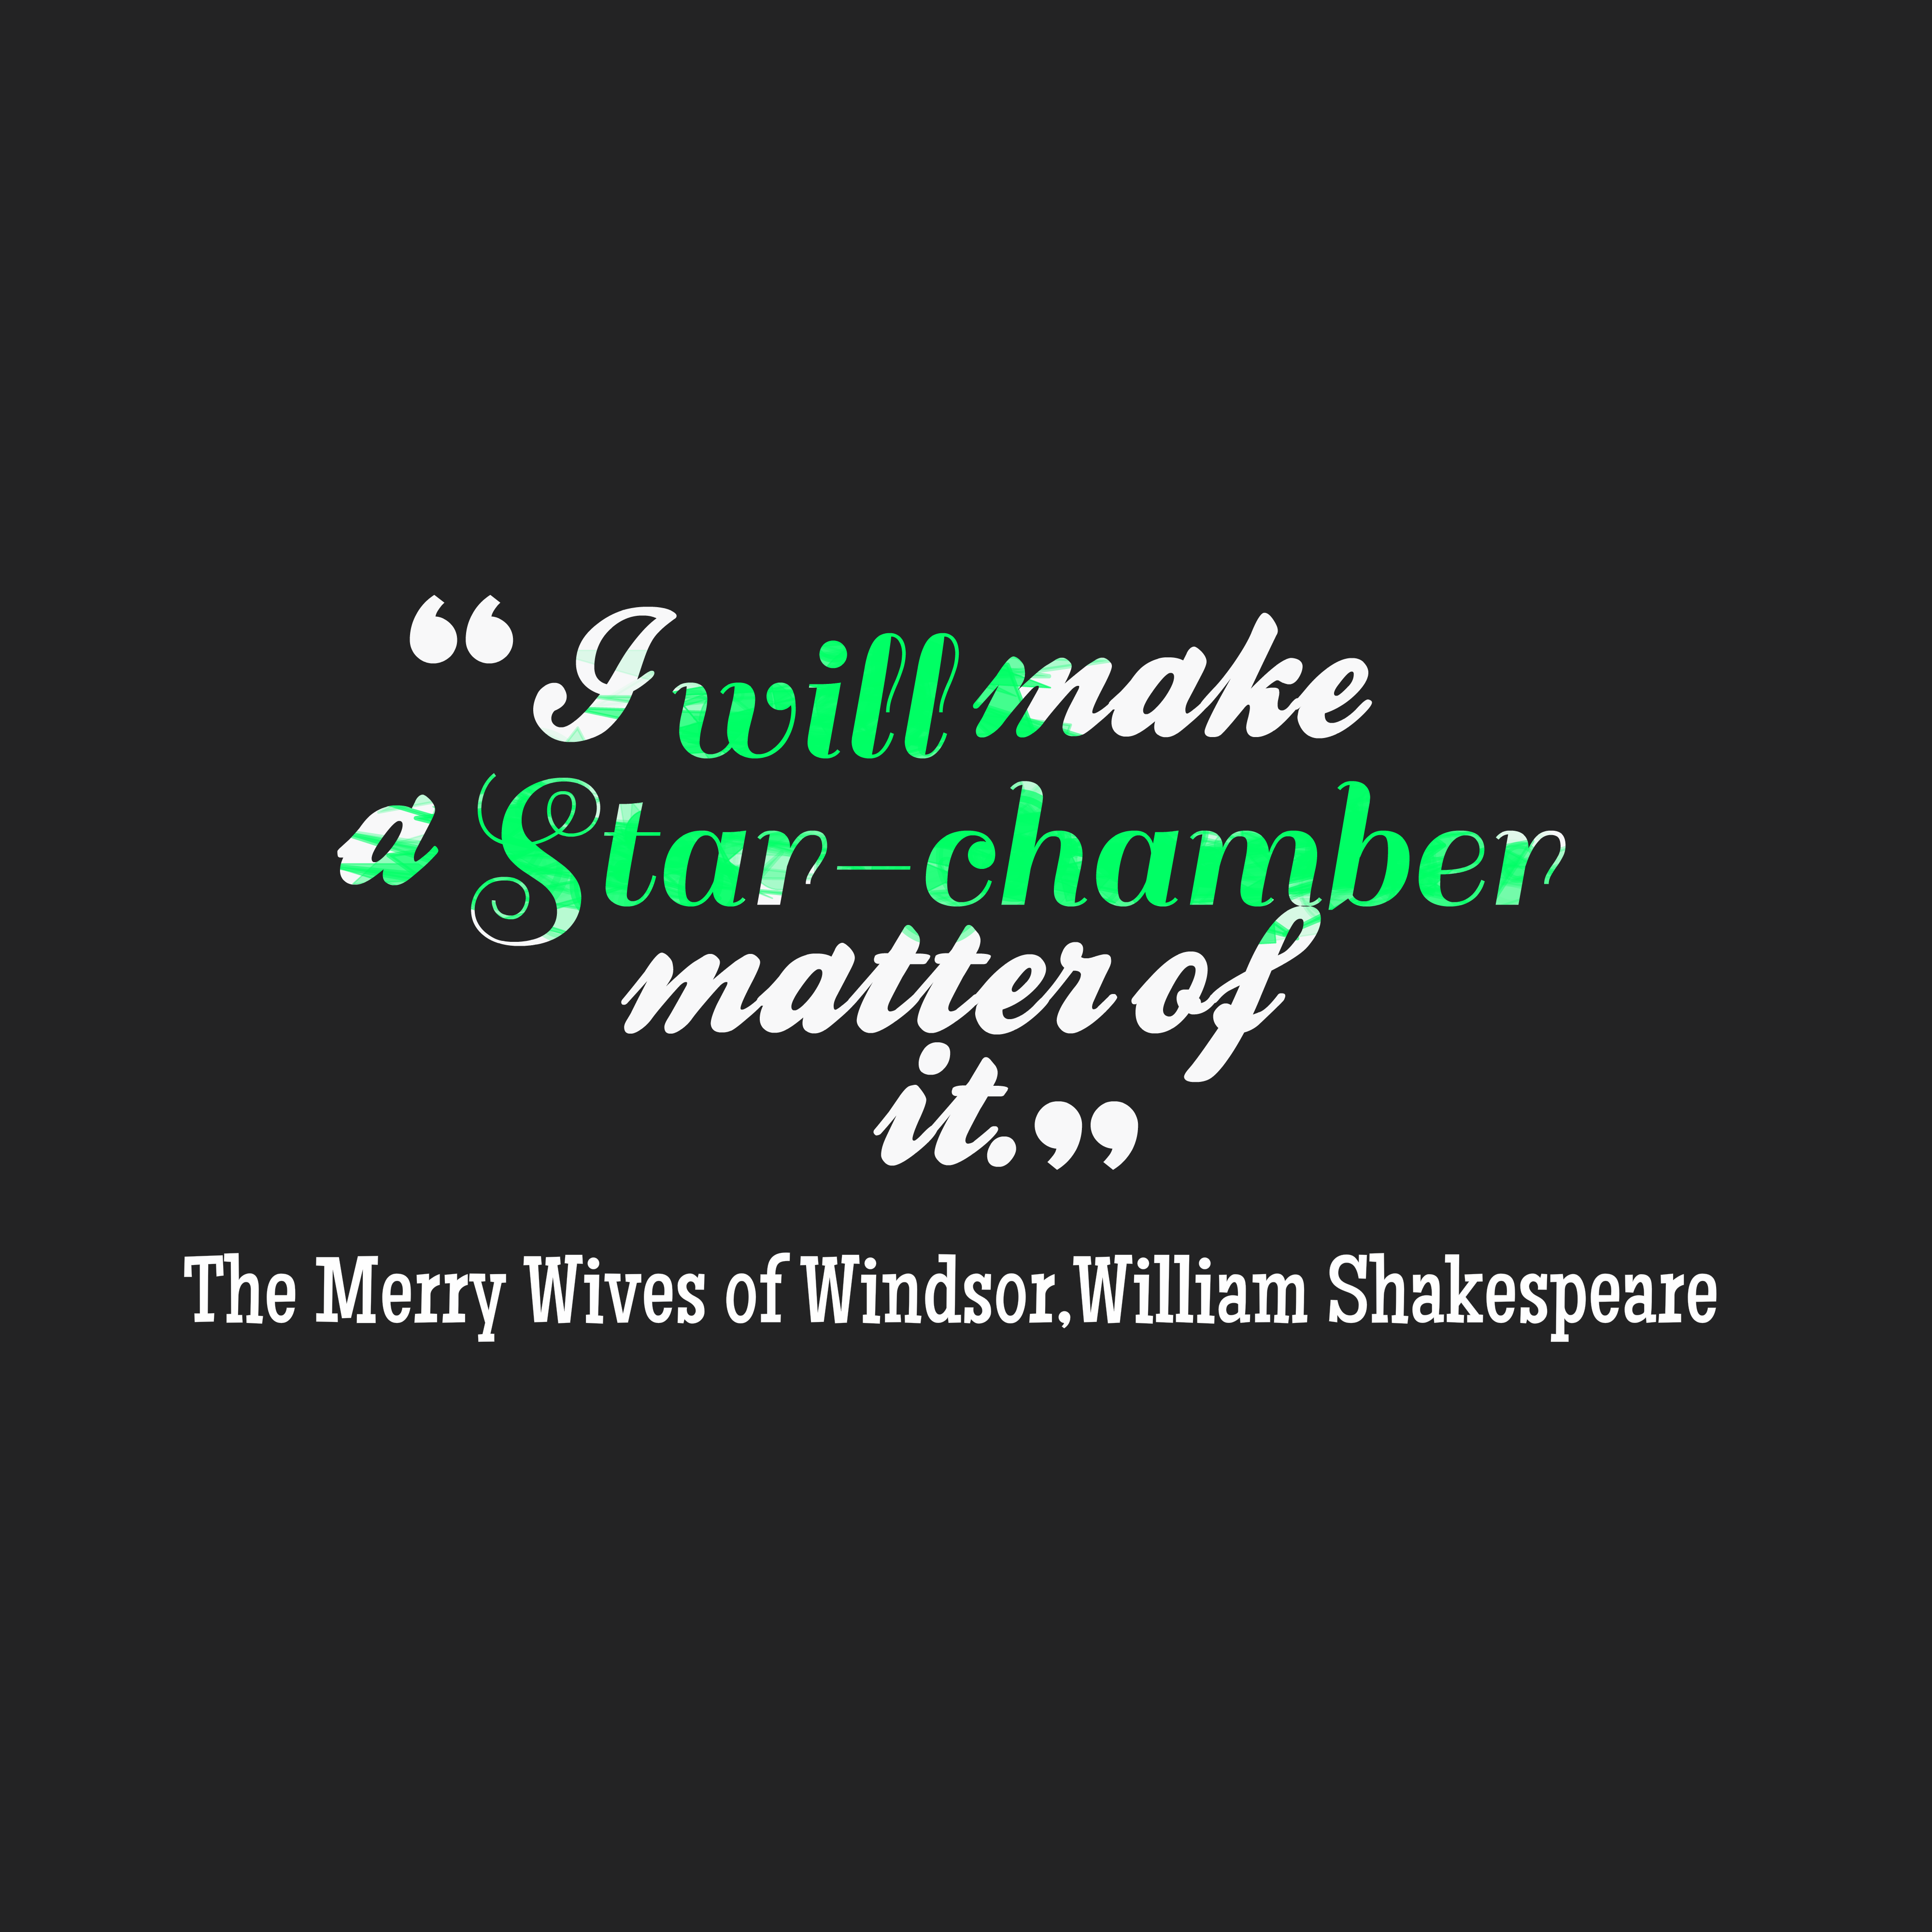 an analysis of william shakespeares the merry wives of windsor Read the story of the merry wives of windsor - shakespeare's comedy of sexual jealousy read the story of the merry wives of windsor william shakespeare.